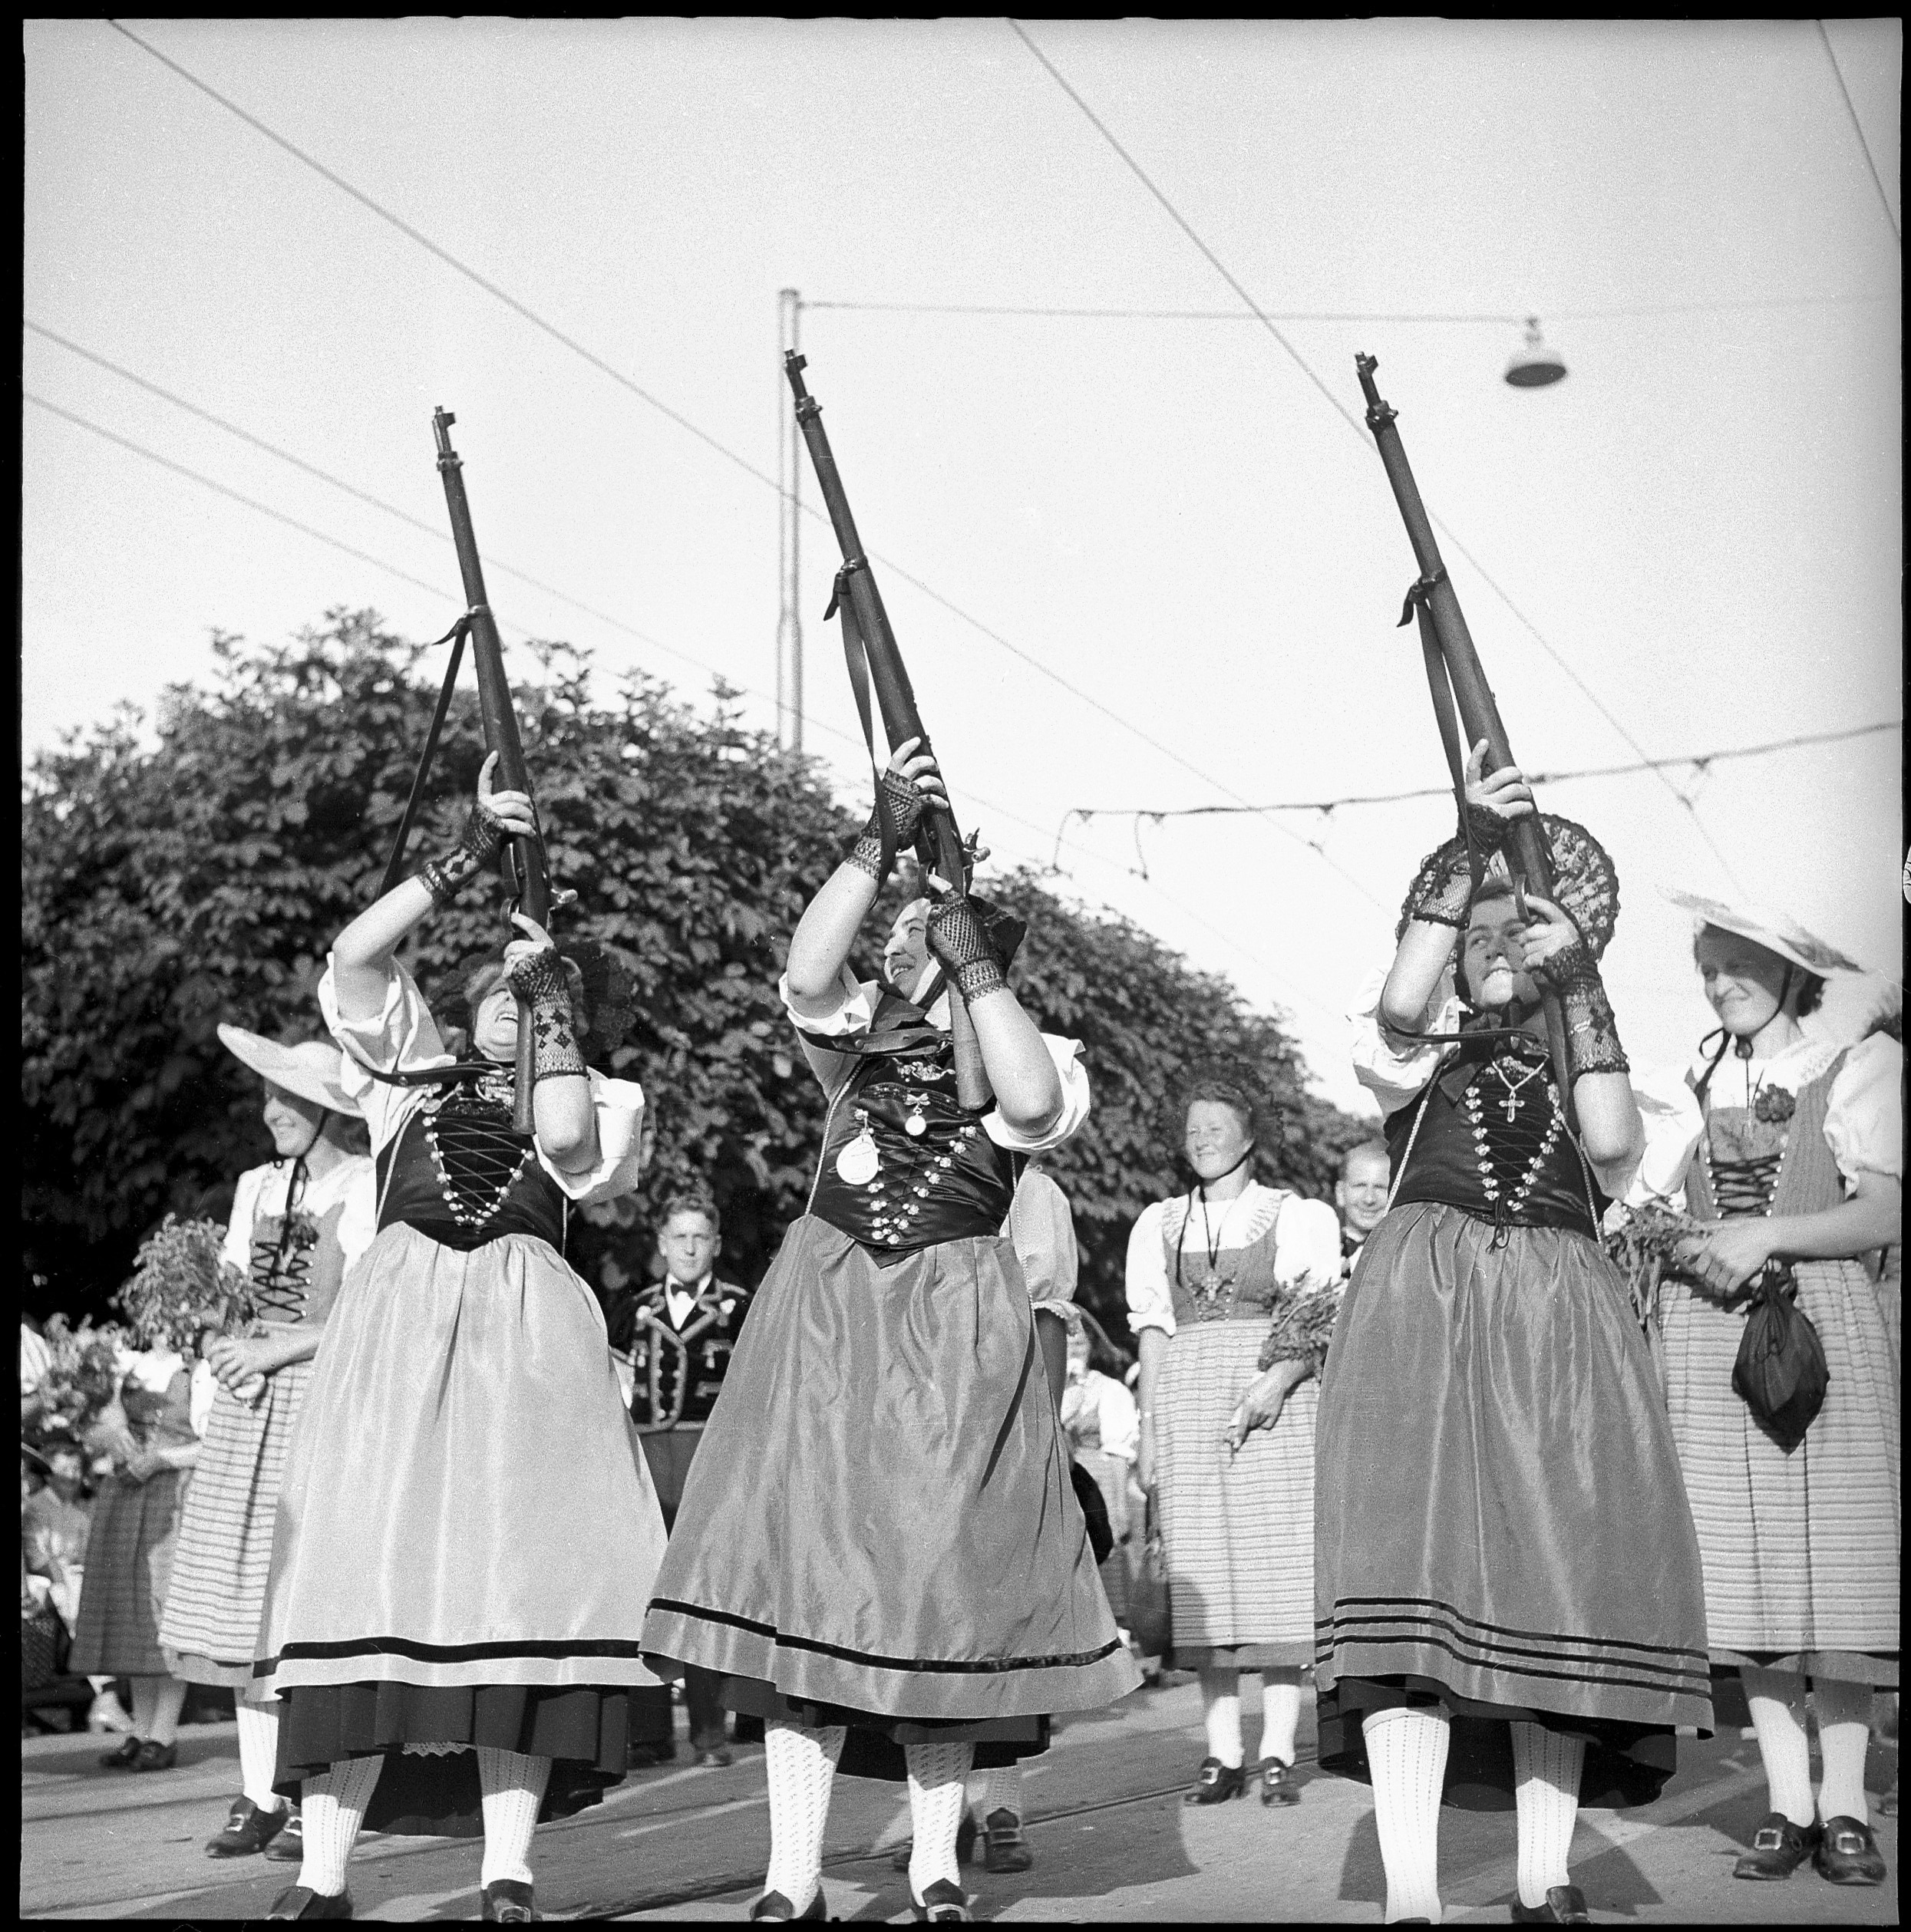 At the federal traditional costumes event in Lucerne in 1951. (RDB)